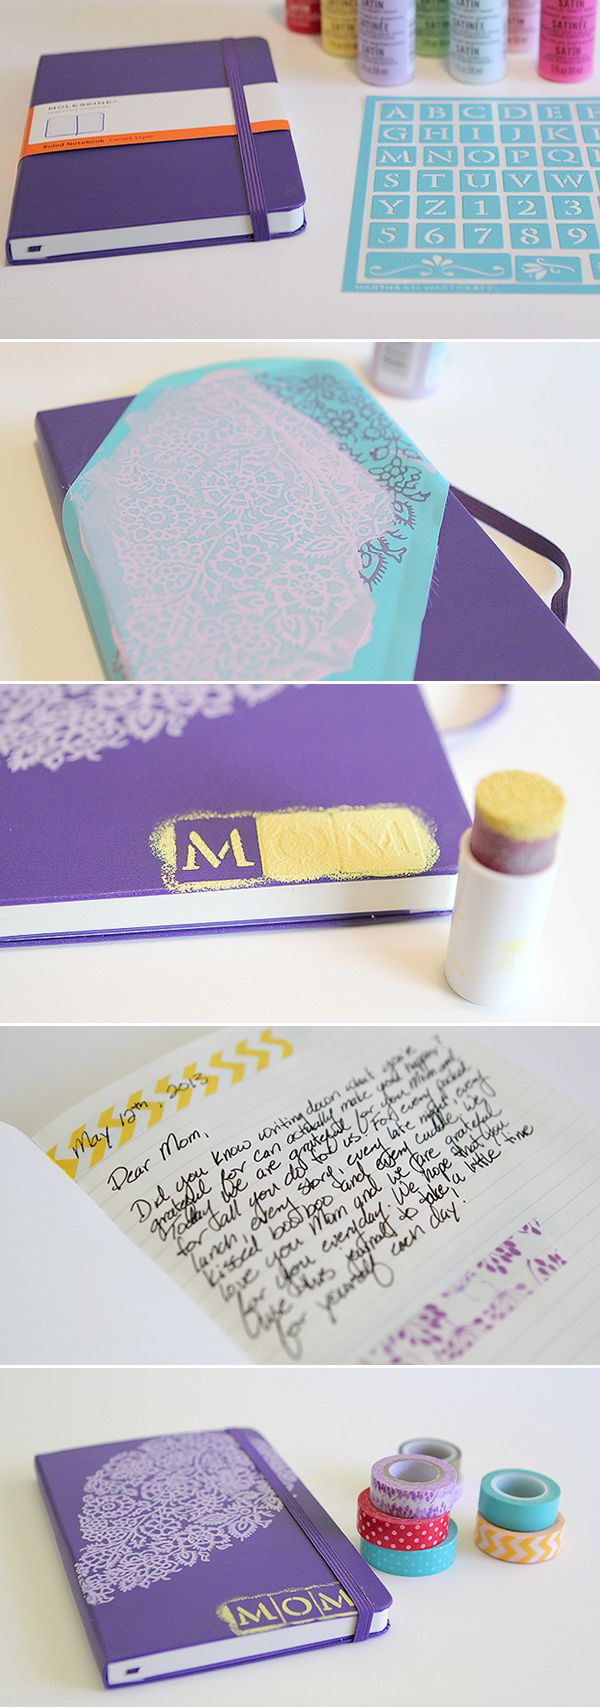 35 fabulous diy gift